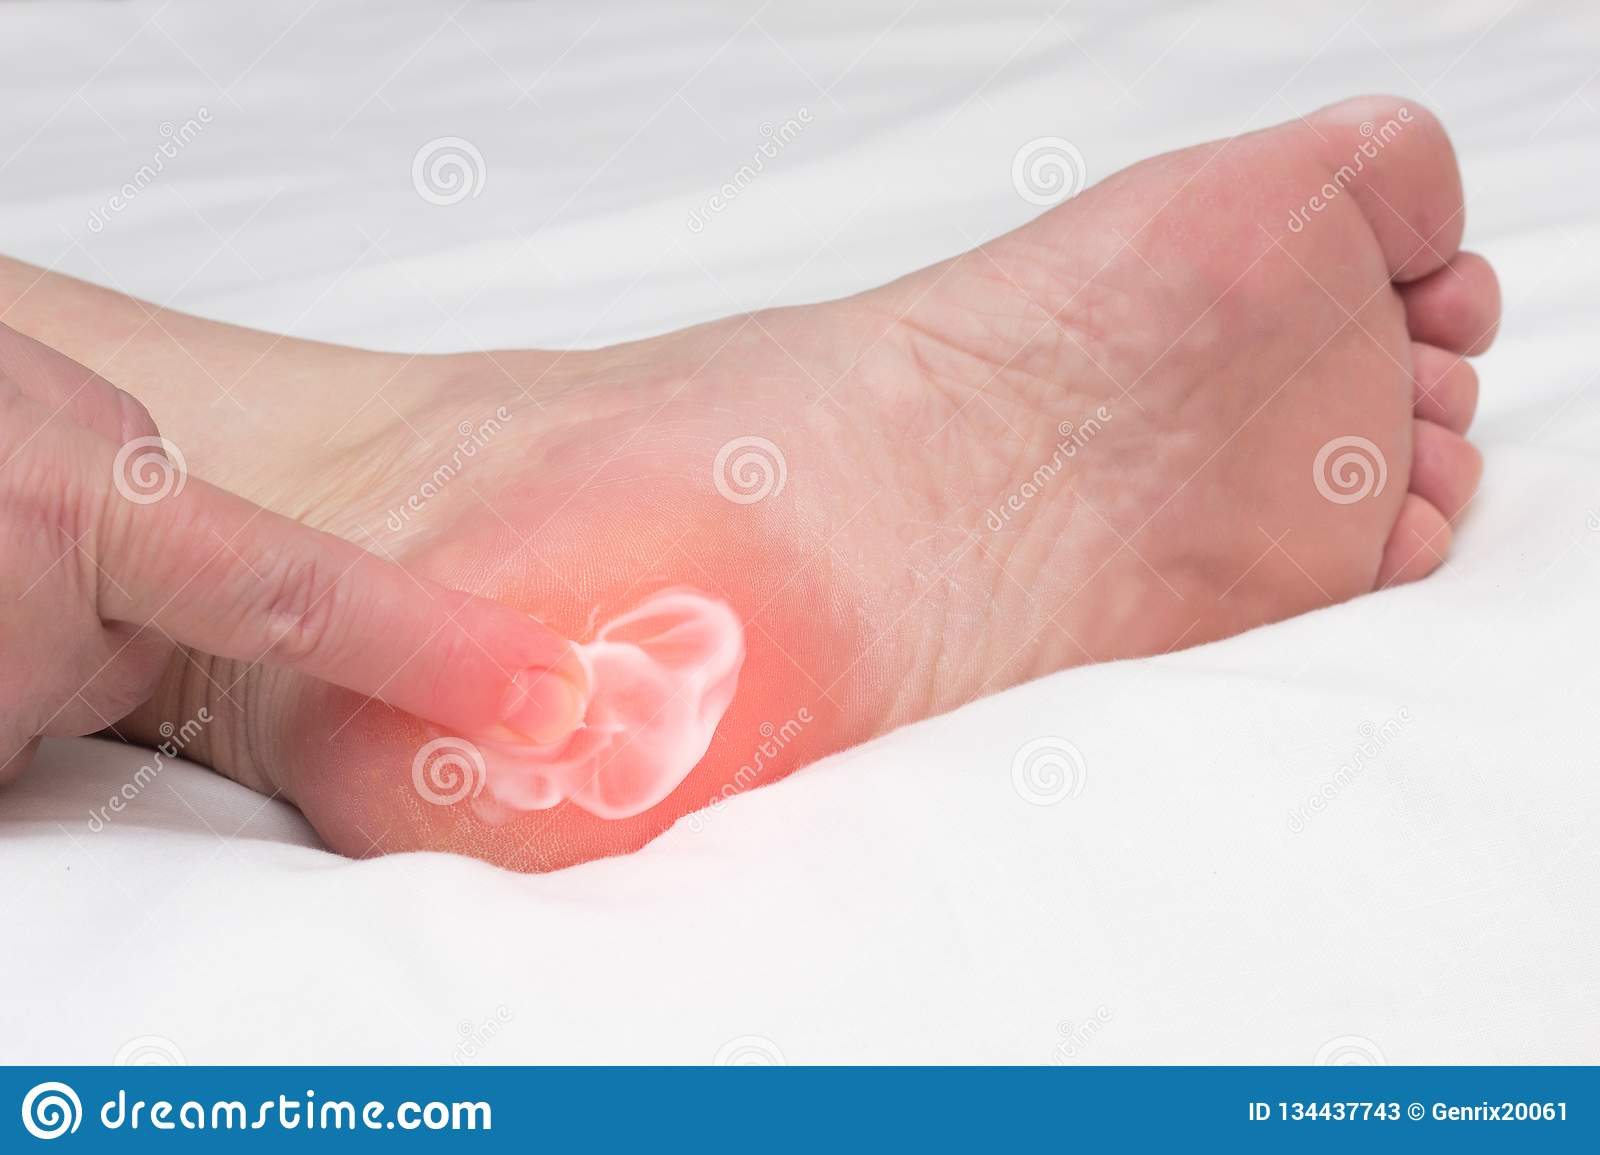 A woman rubs a healing balm cream for the treatment of thorns and osteophytes, a spot spur in the heel, removal of inflammation